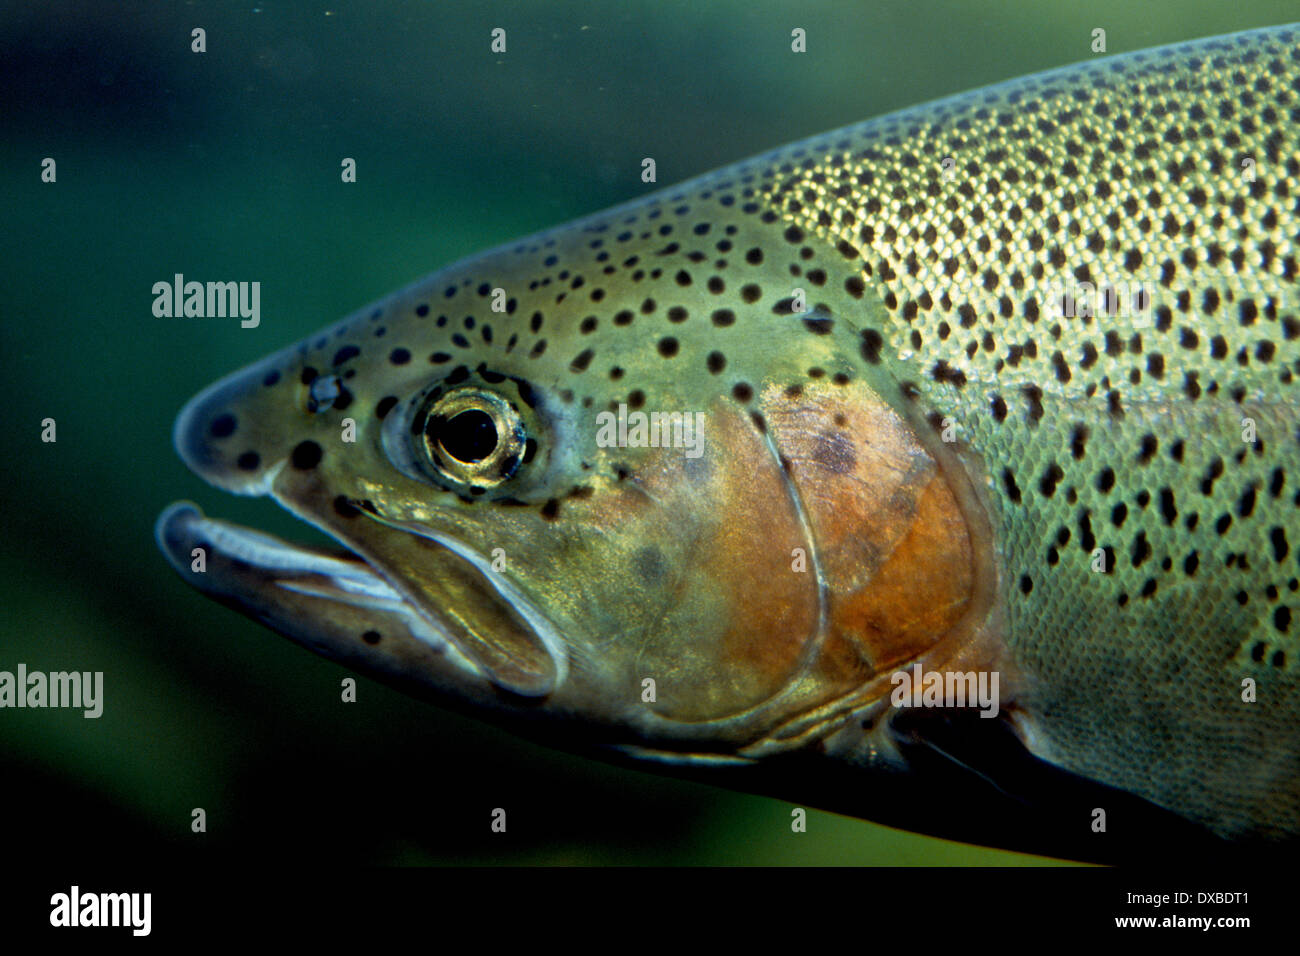 Gill Cover Fish Stock Photos & Gill Cover Fish Stock Images - Alamy